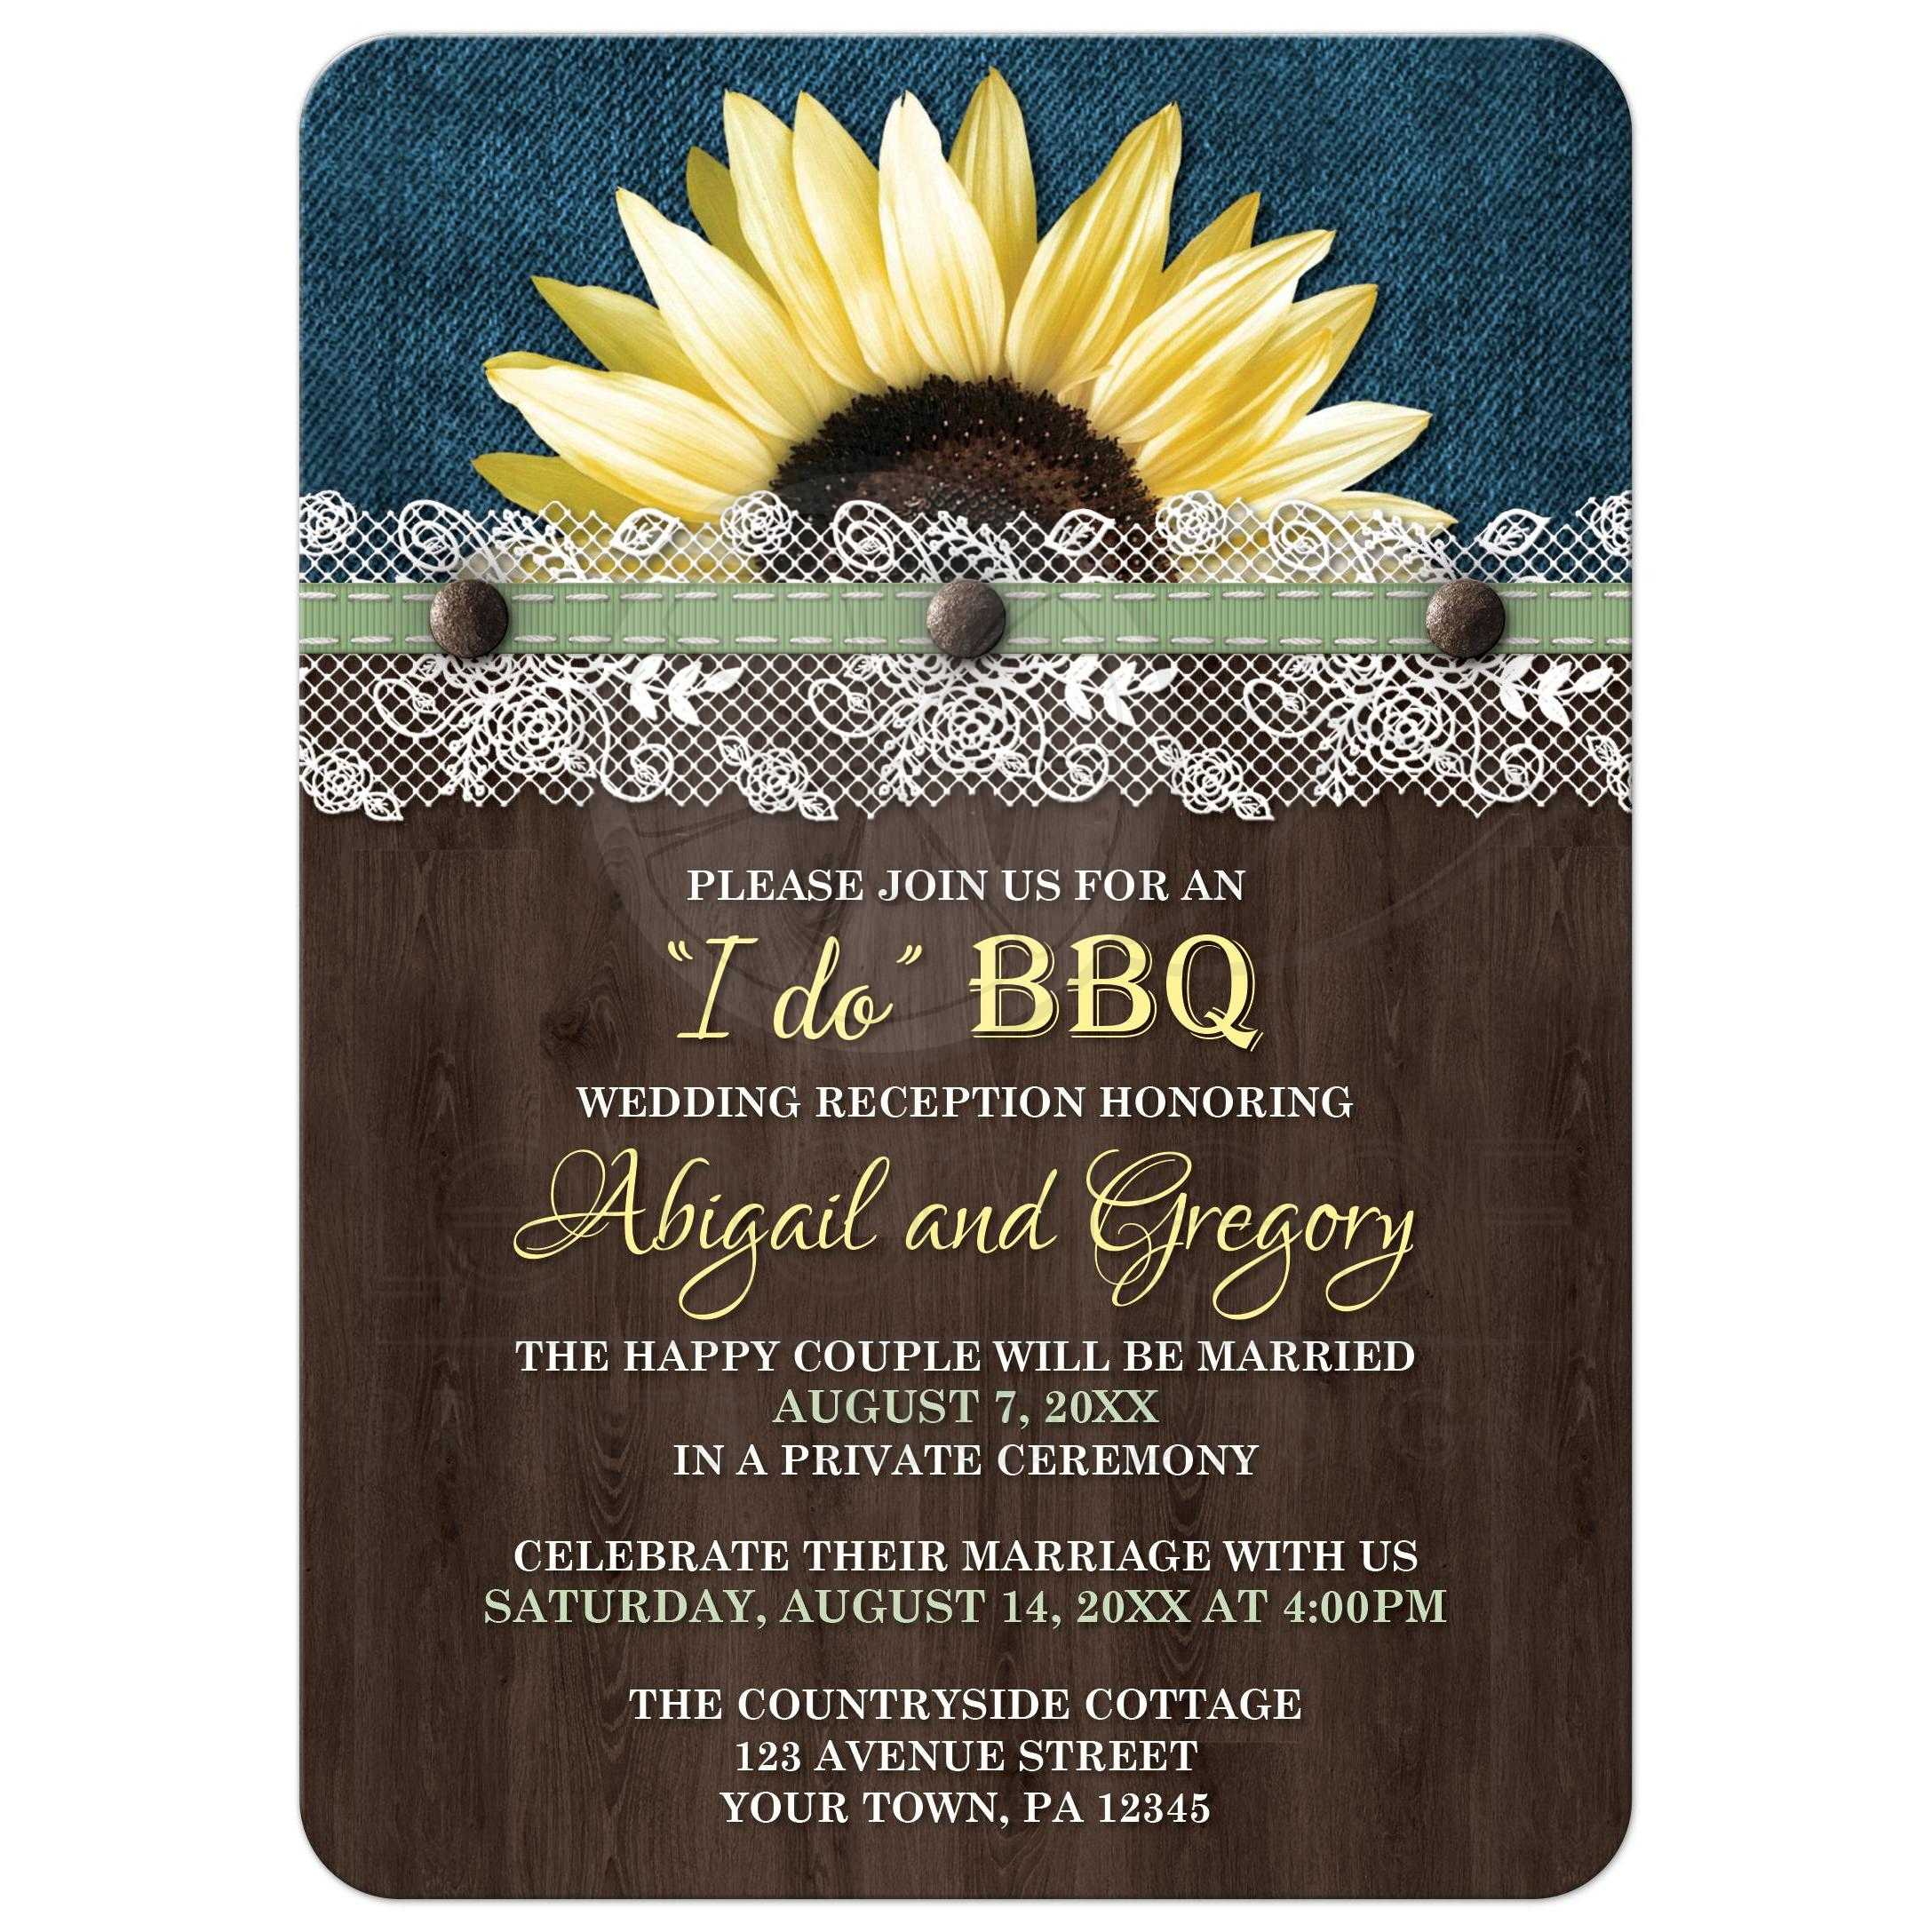 Reception Only Invitations   Sunflower Denim Wood Lace I Do BBQ